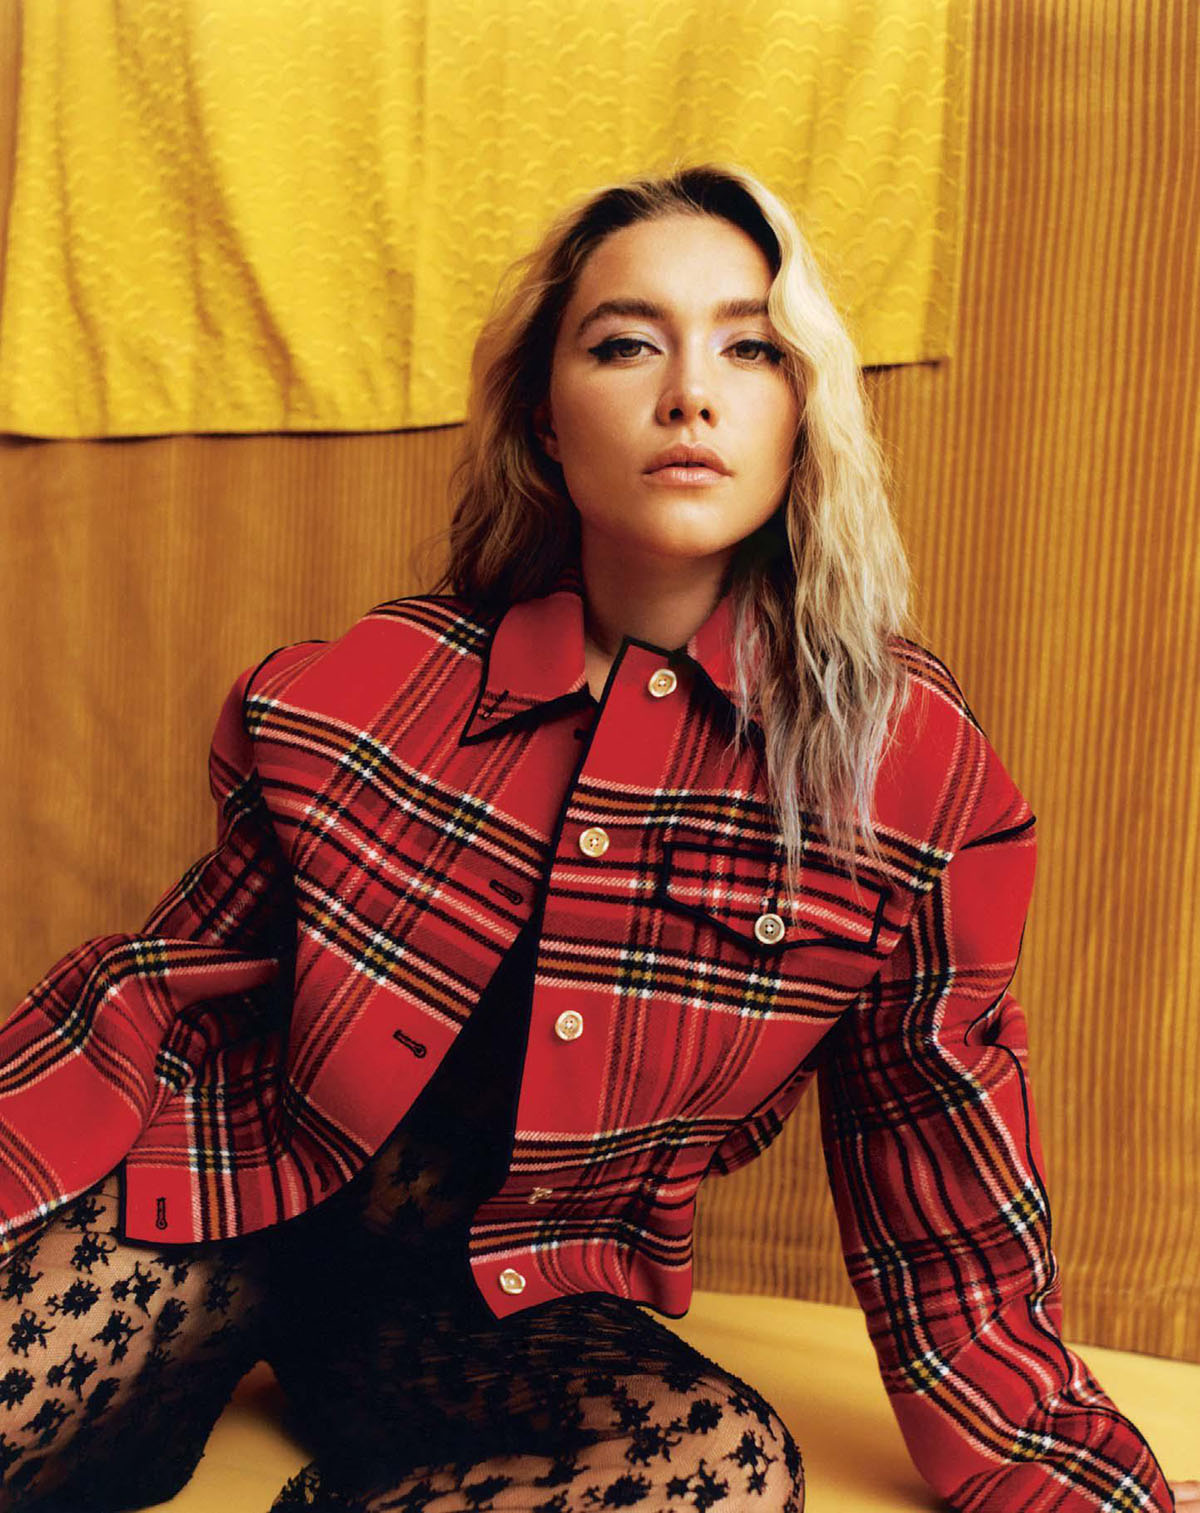 Florence Pugh covers The Sunday Times Style July 4th, 2021 by Juliette Cassidy